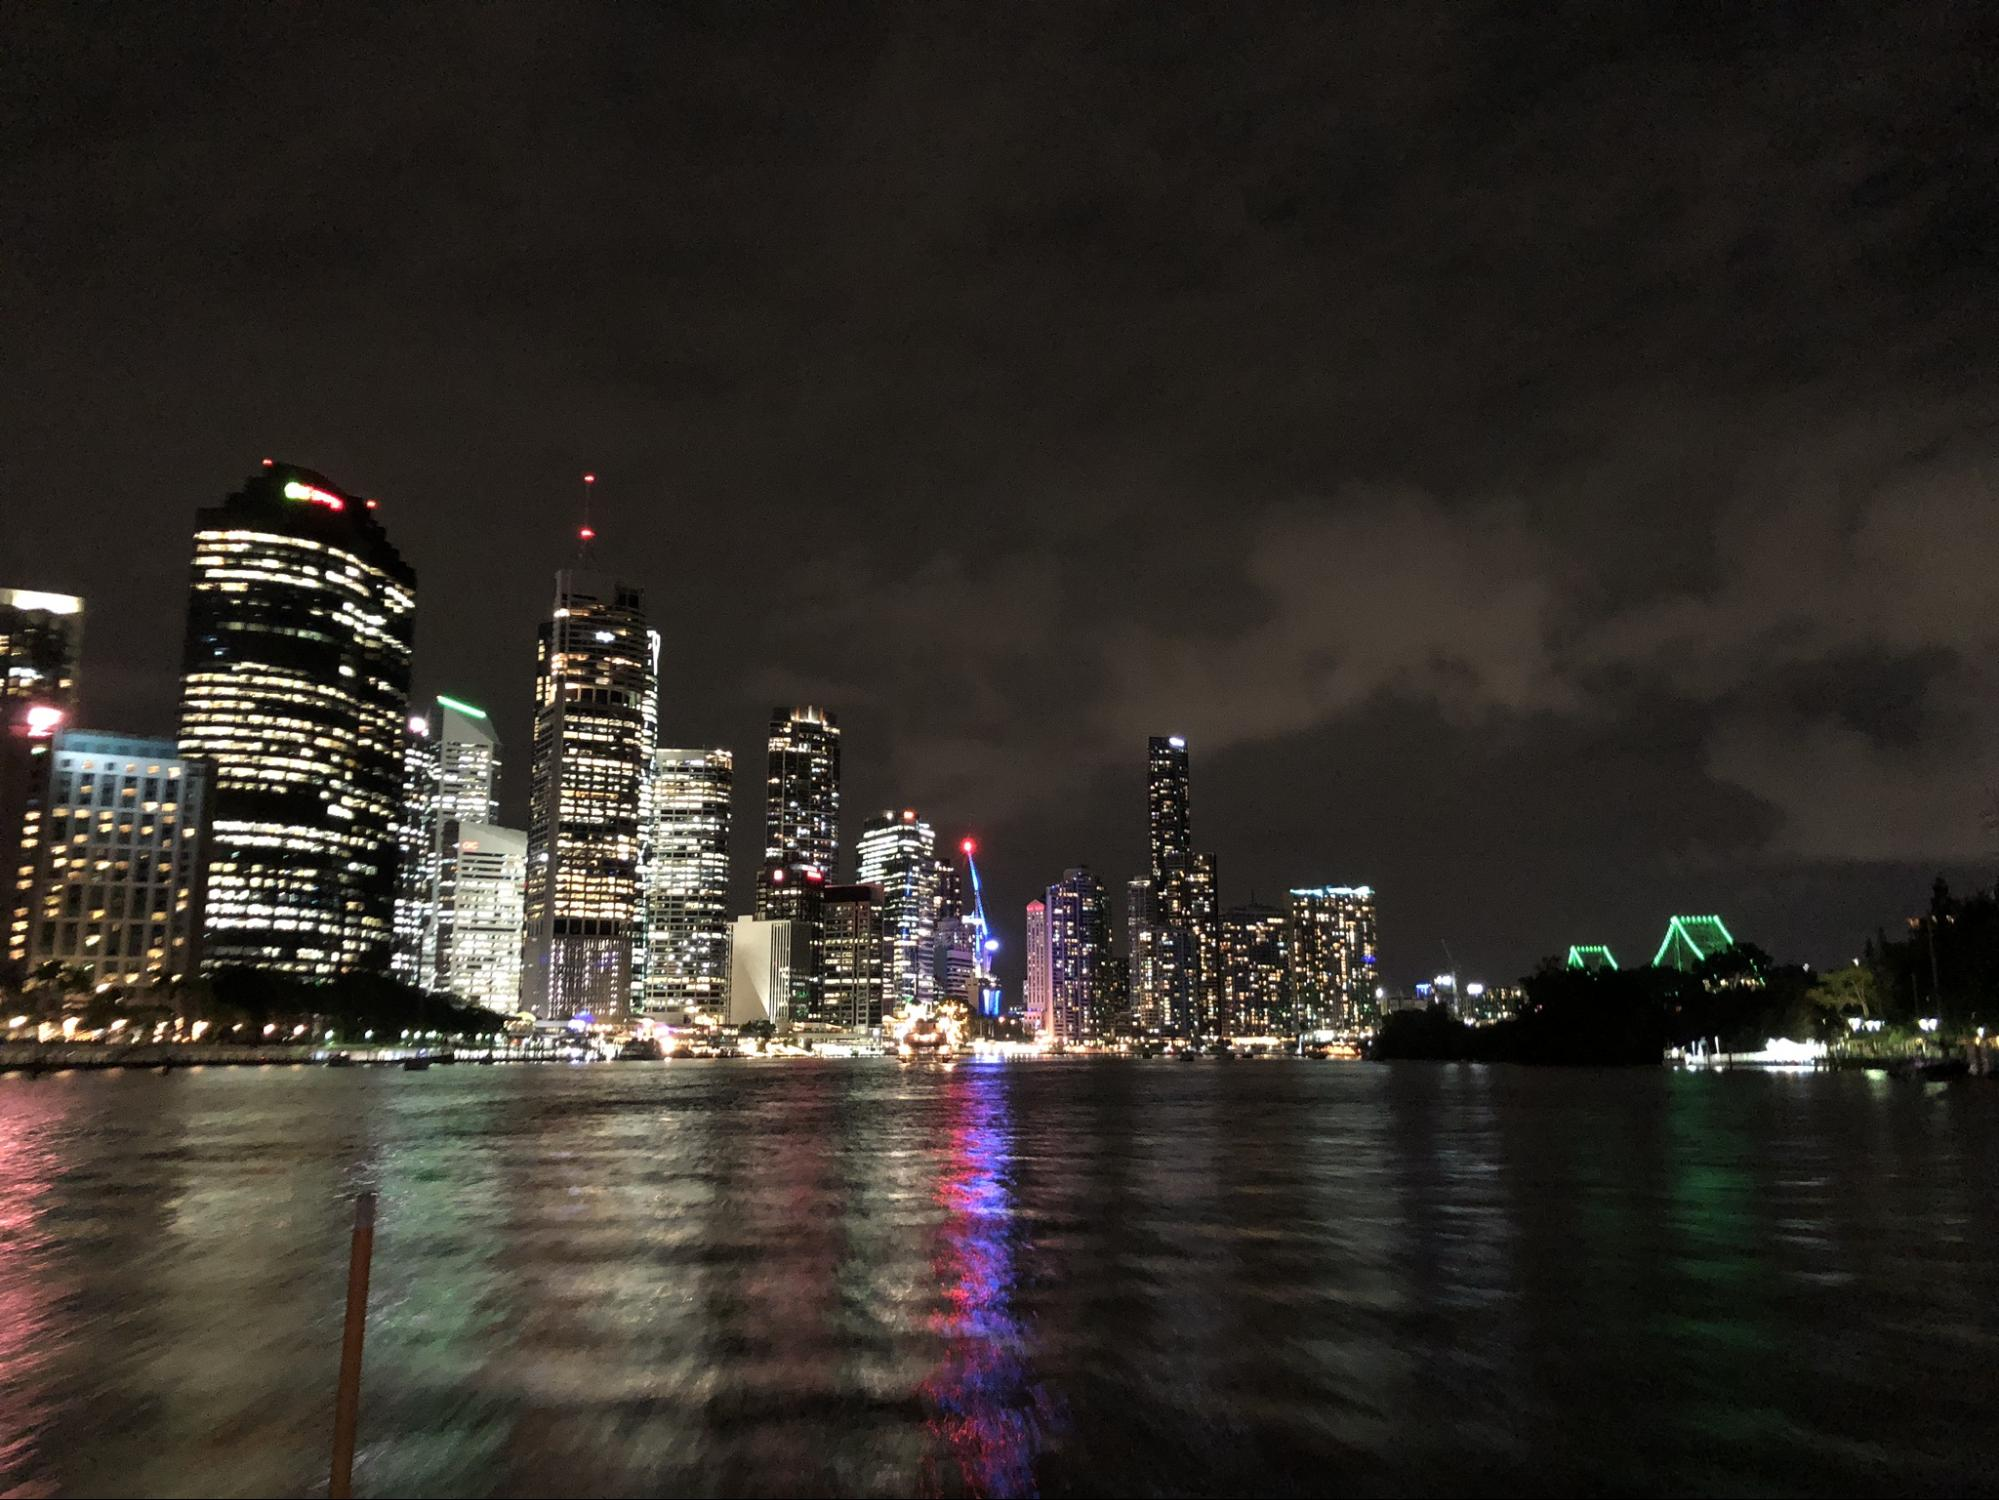 After all the hard work at the conference, the Brisbane skyline and nightlife were a welcome respite.